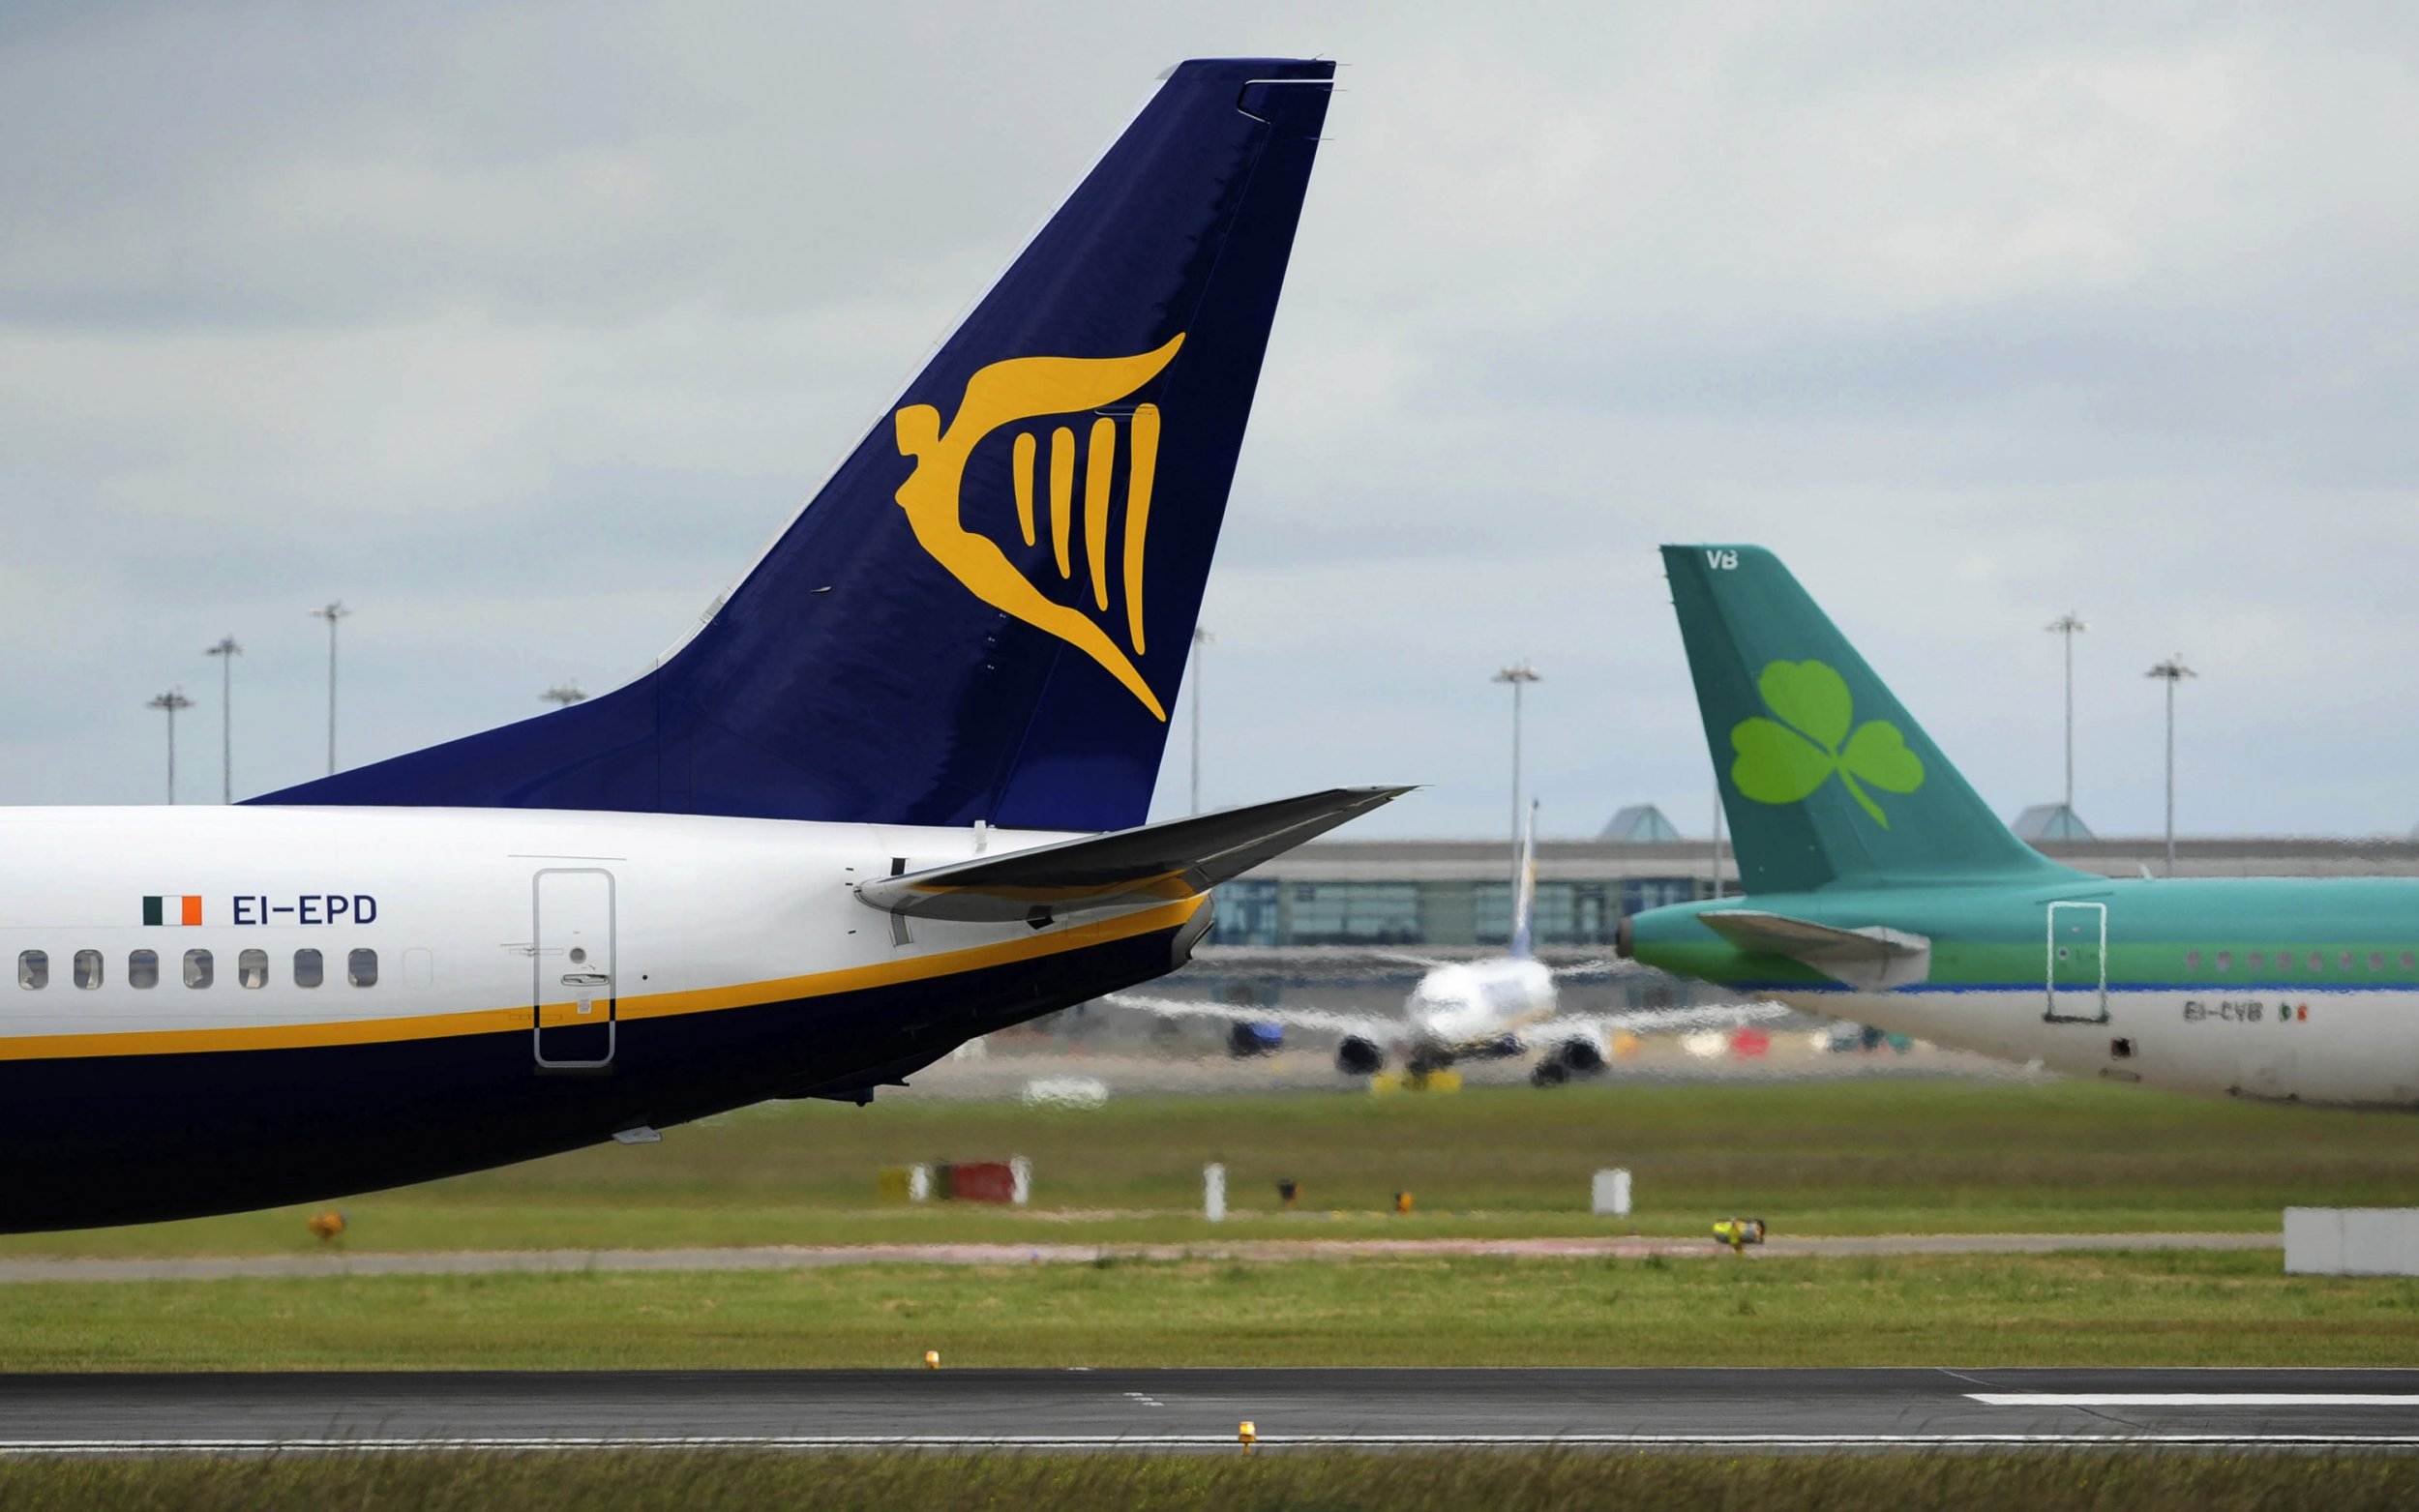 Ryanair and Aer Lingus ordered to pay £13.5 MILLION tax bill A Boeing 737 aircraft, left, operated by Ryanair Holdings Plc, taxis past an Airbus SAS A320, operated by Aer Lingus Group Plc, at Dublin Airport in Dublin, Ireland, on Thursday, June 9, 2011. Aer Lingus Group Plc's total booked passenger numbers rose 4 percent to 911,000 in May from the year earlier. Photographer: Aidan Crawley/Bloomberg via Getty Images